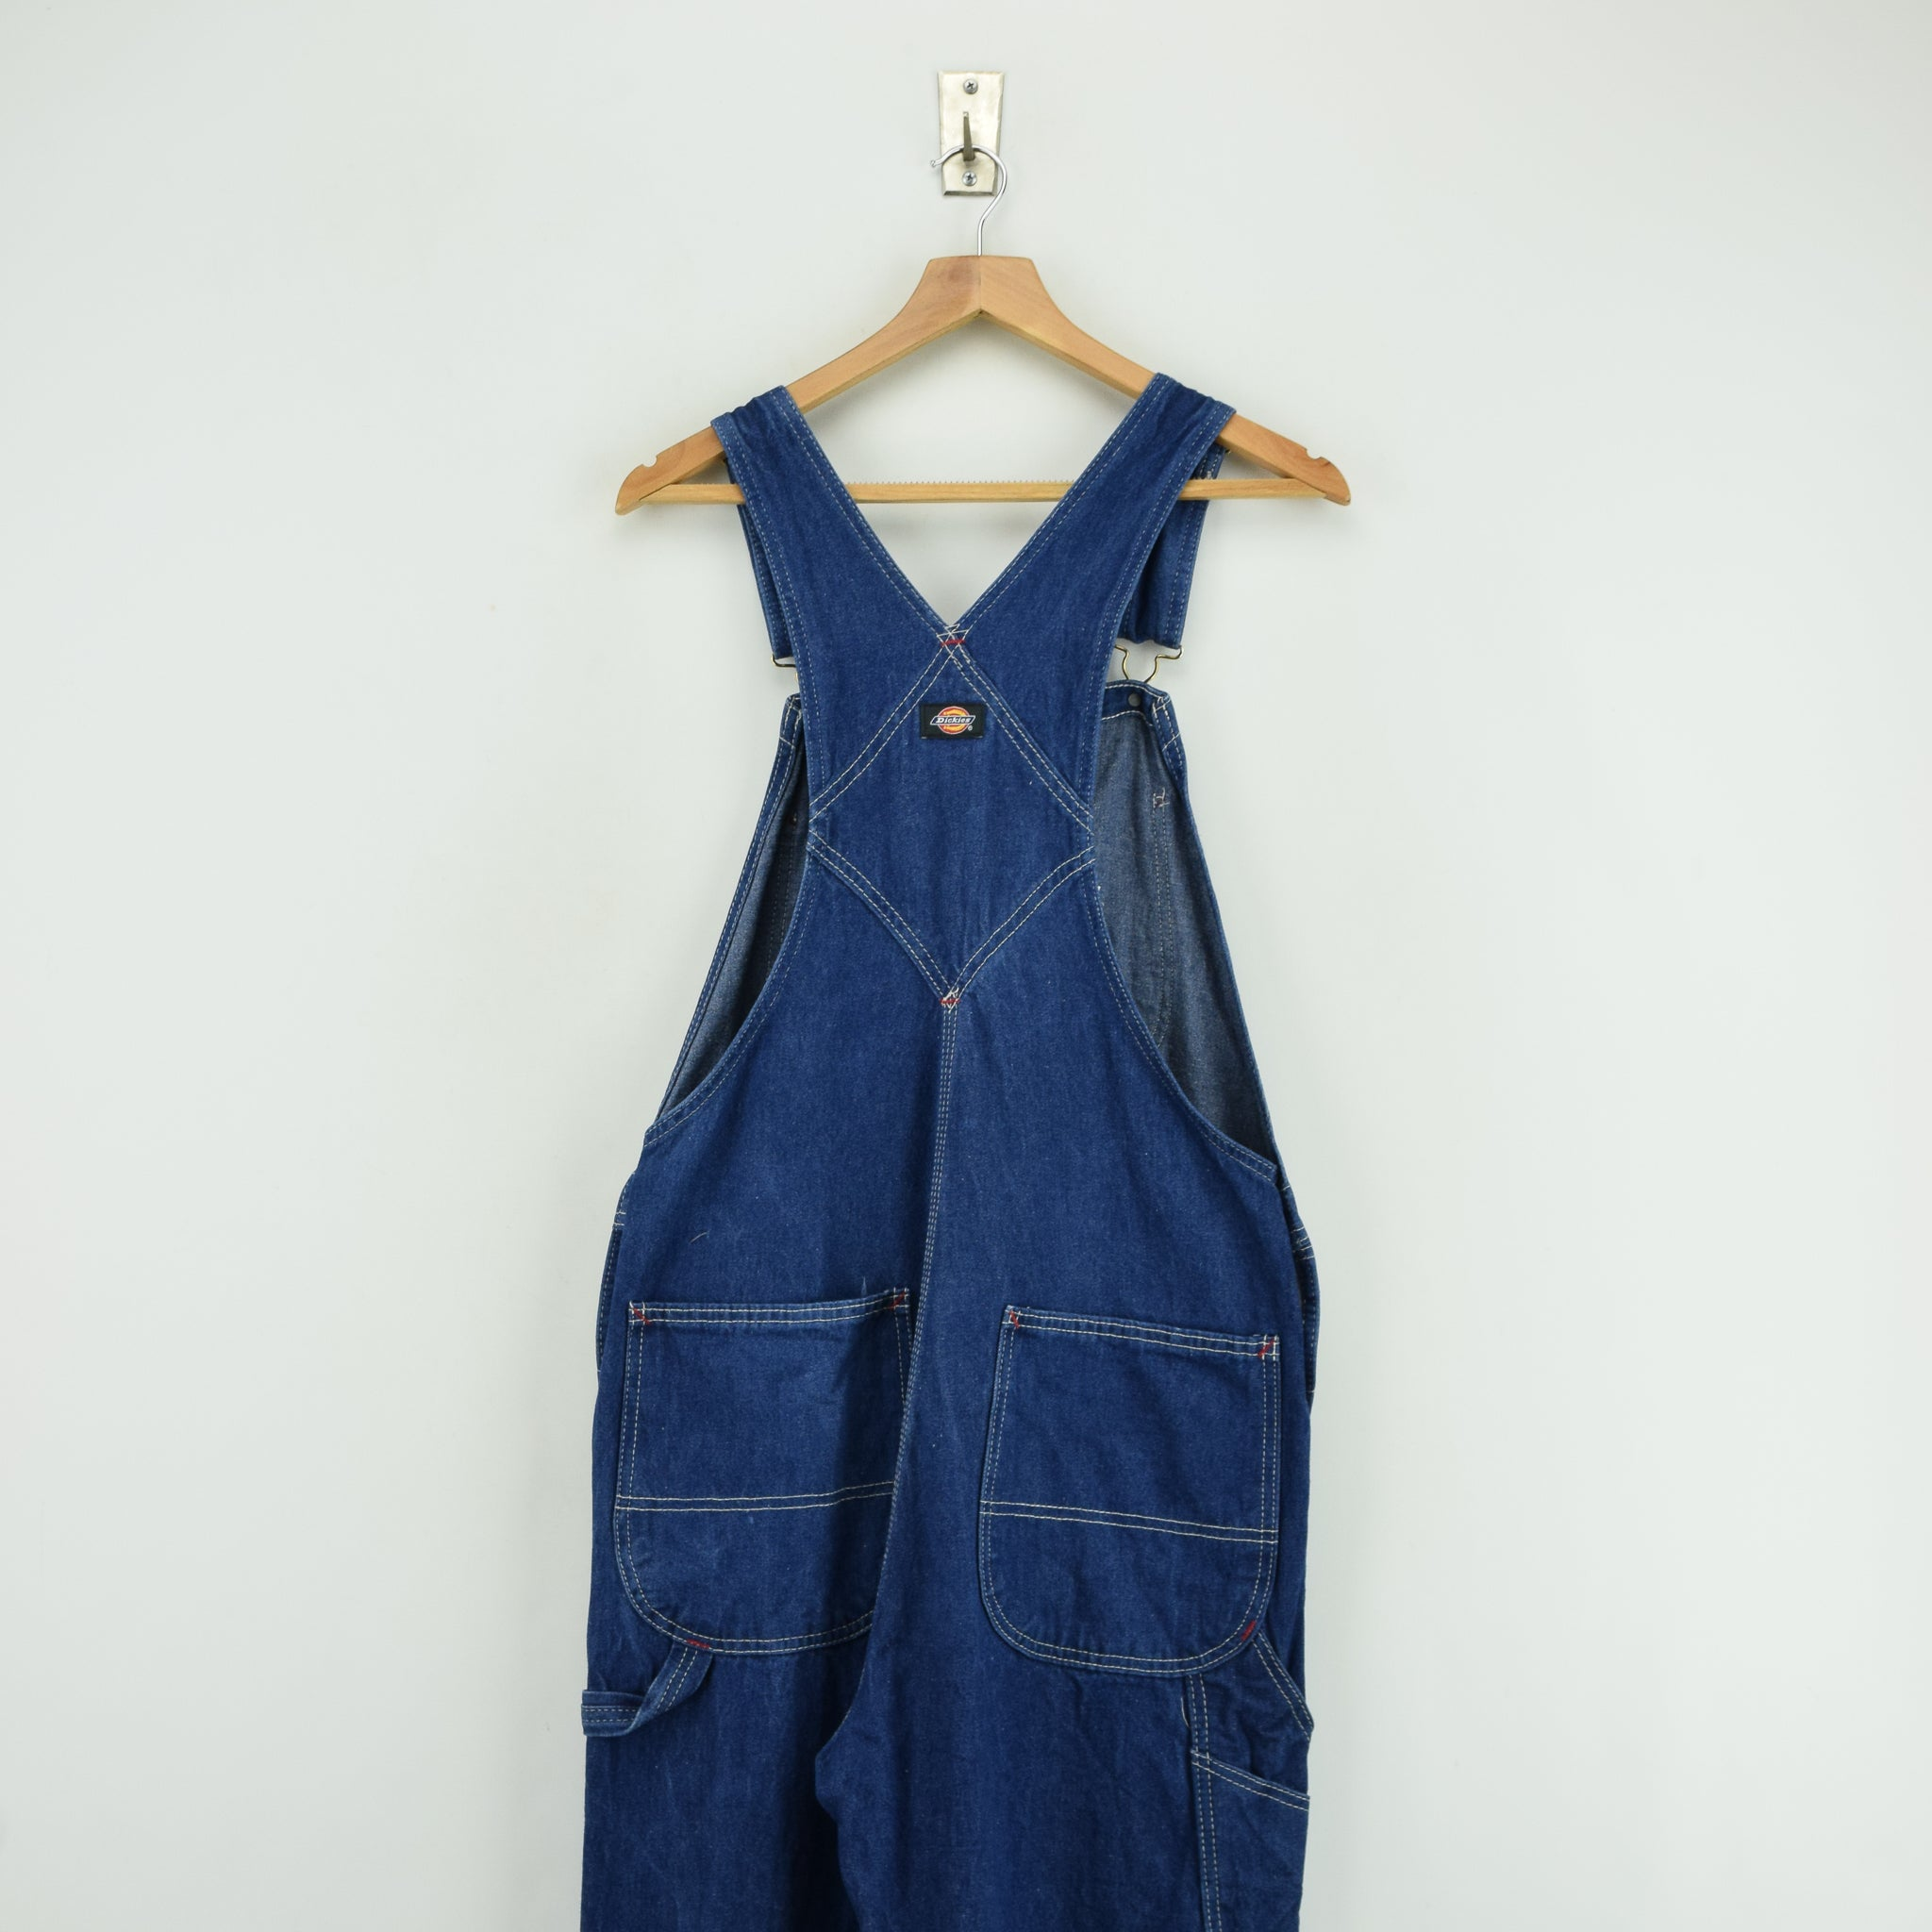 Vintage Dickies Denim Work Dungarees Blue Bib Overalls Trousers 32 W 30 L back